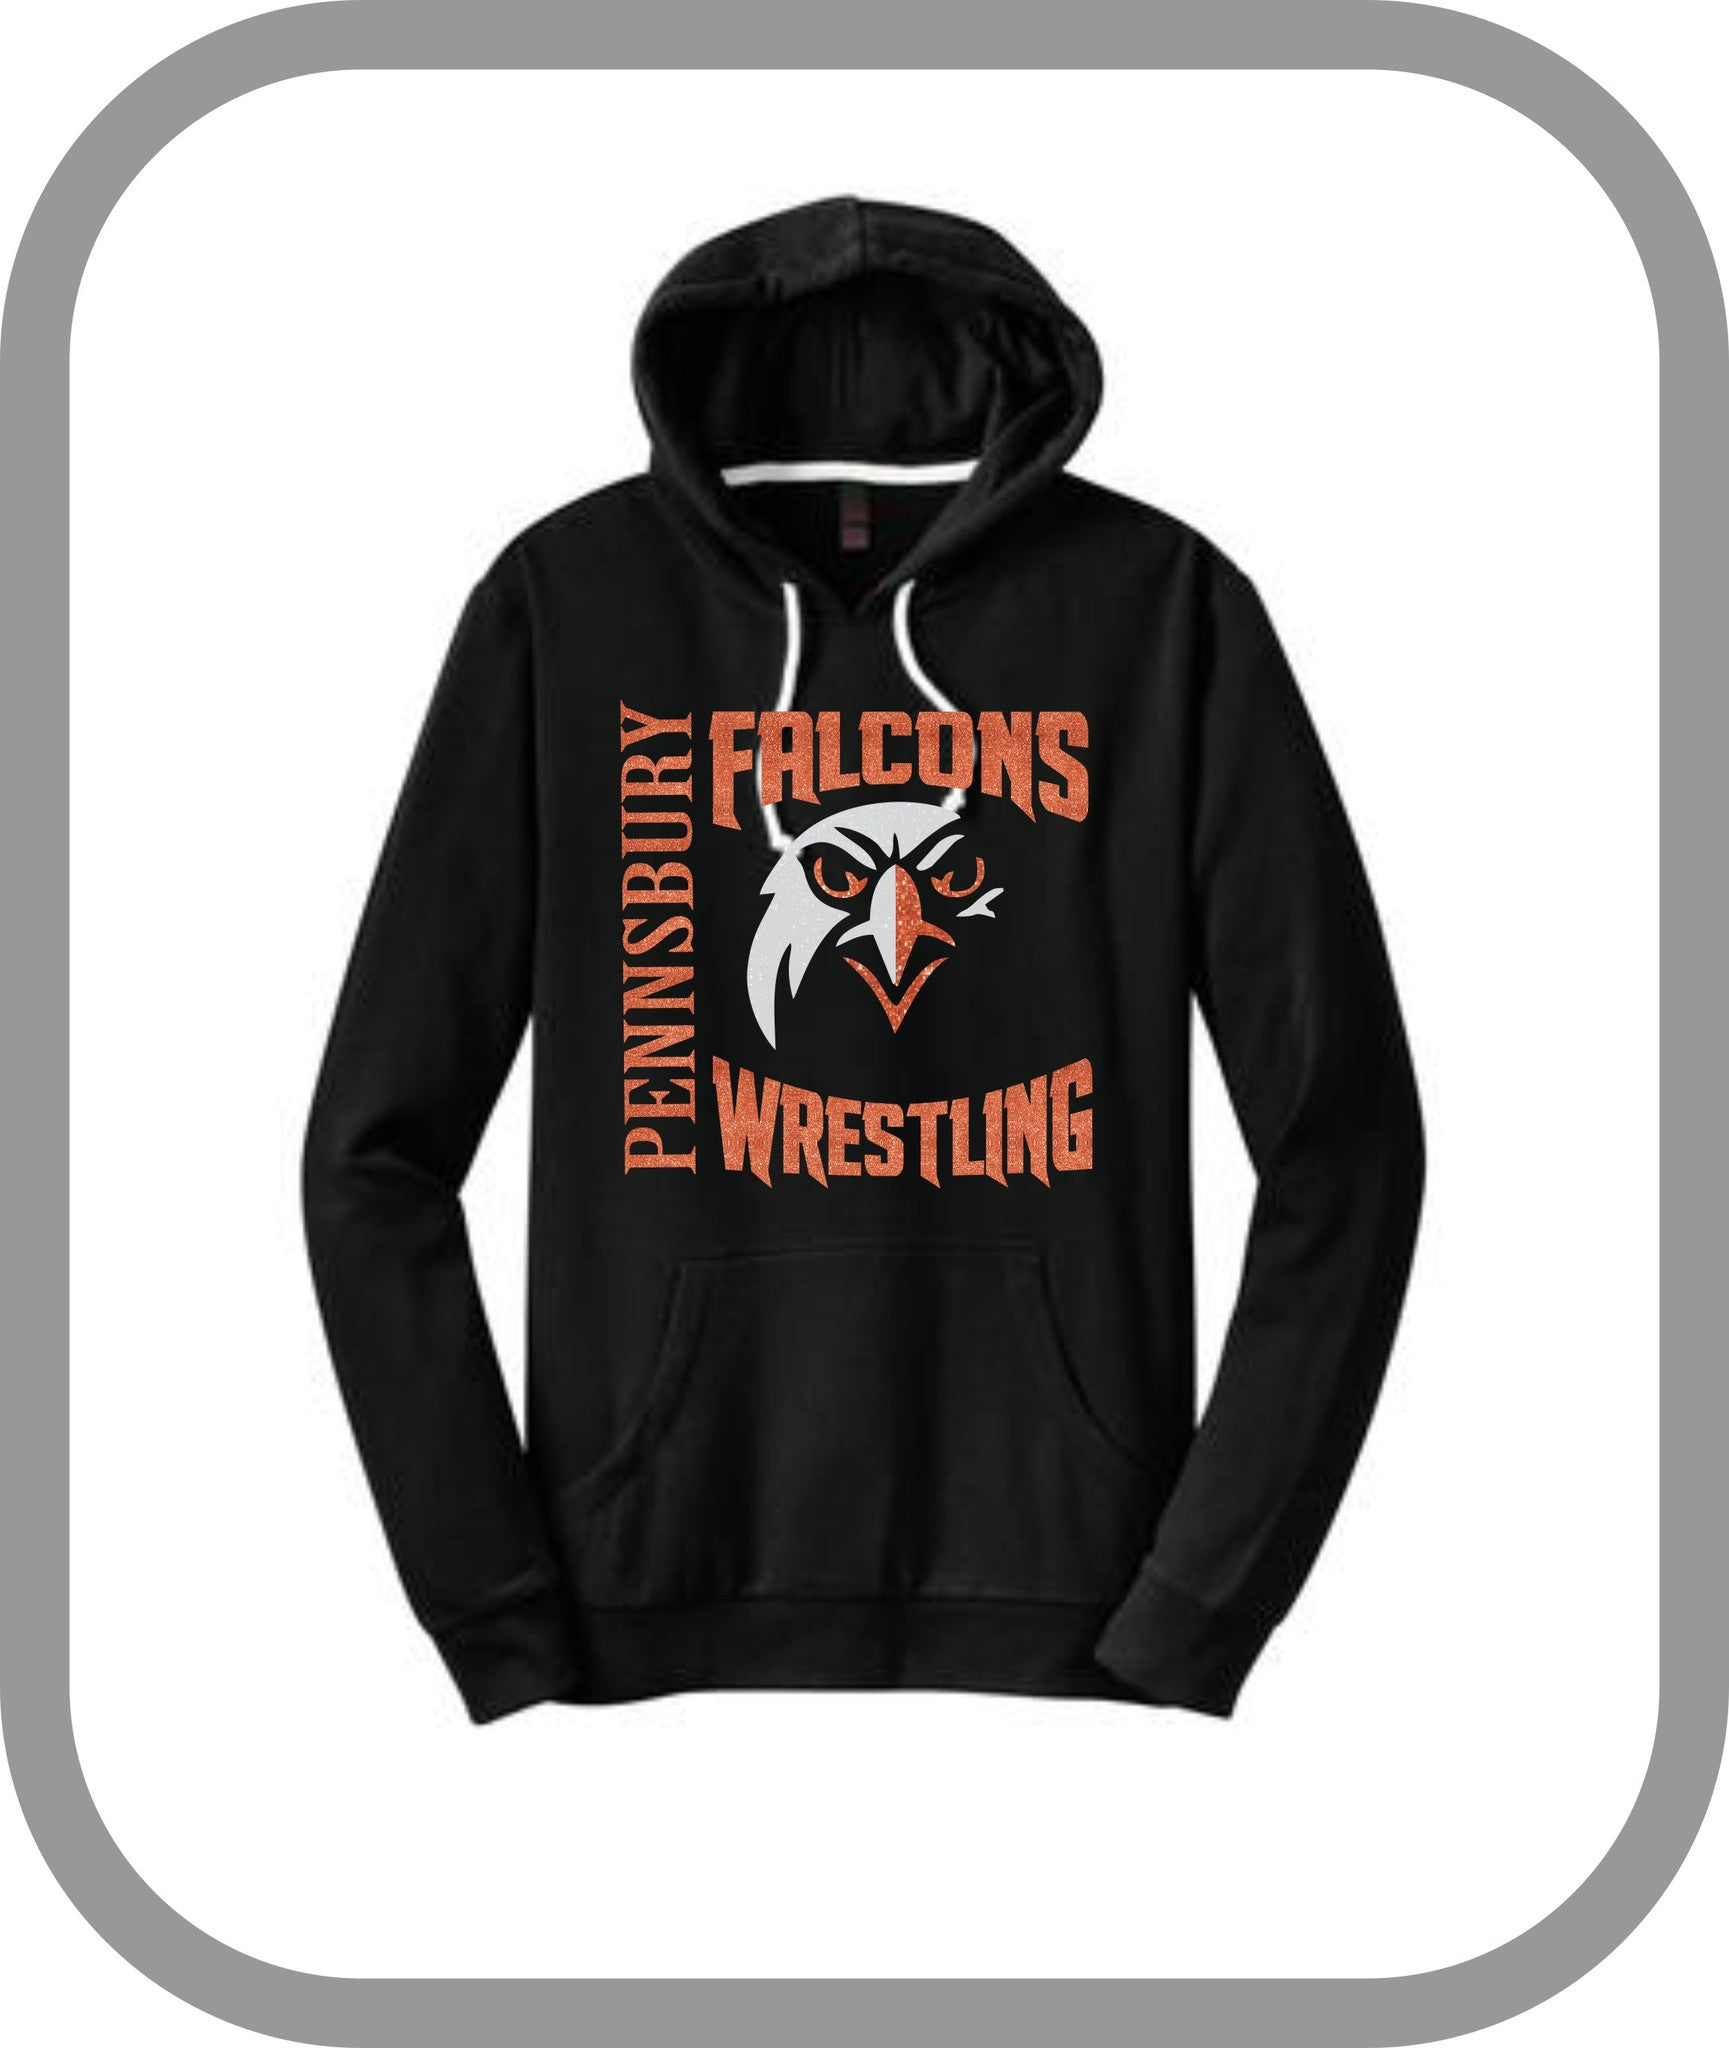 Falcons Wrestling - Ladies Pullover Hoodies with choice of design